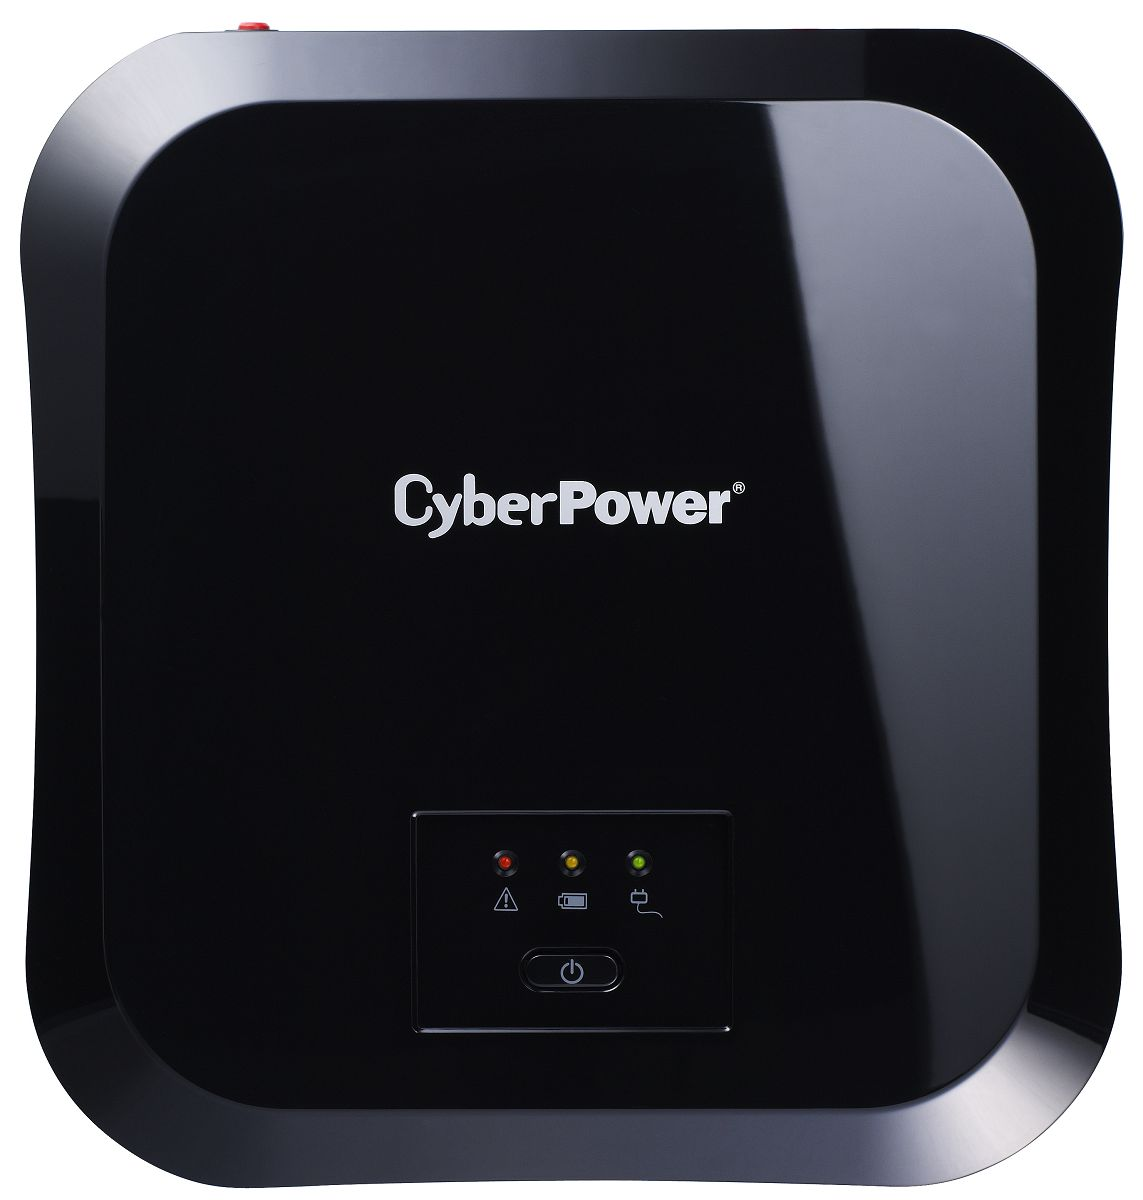 PW INVERTER / Cyber Power Systems, Inc.